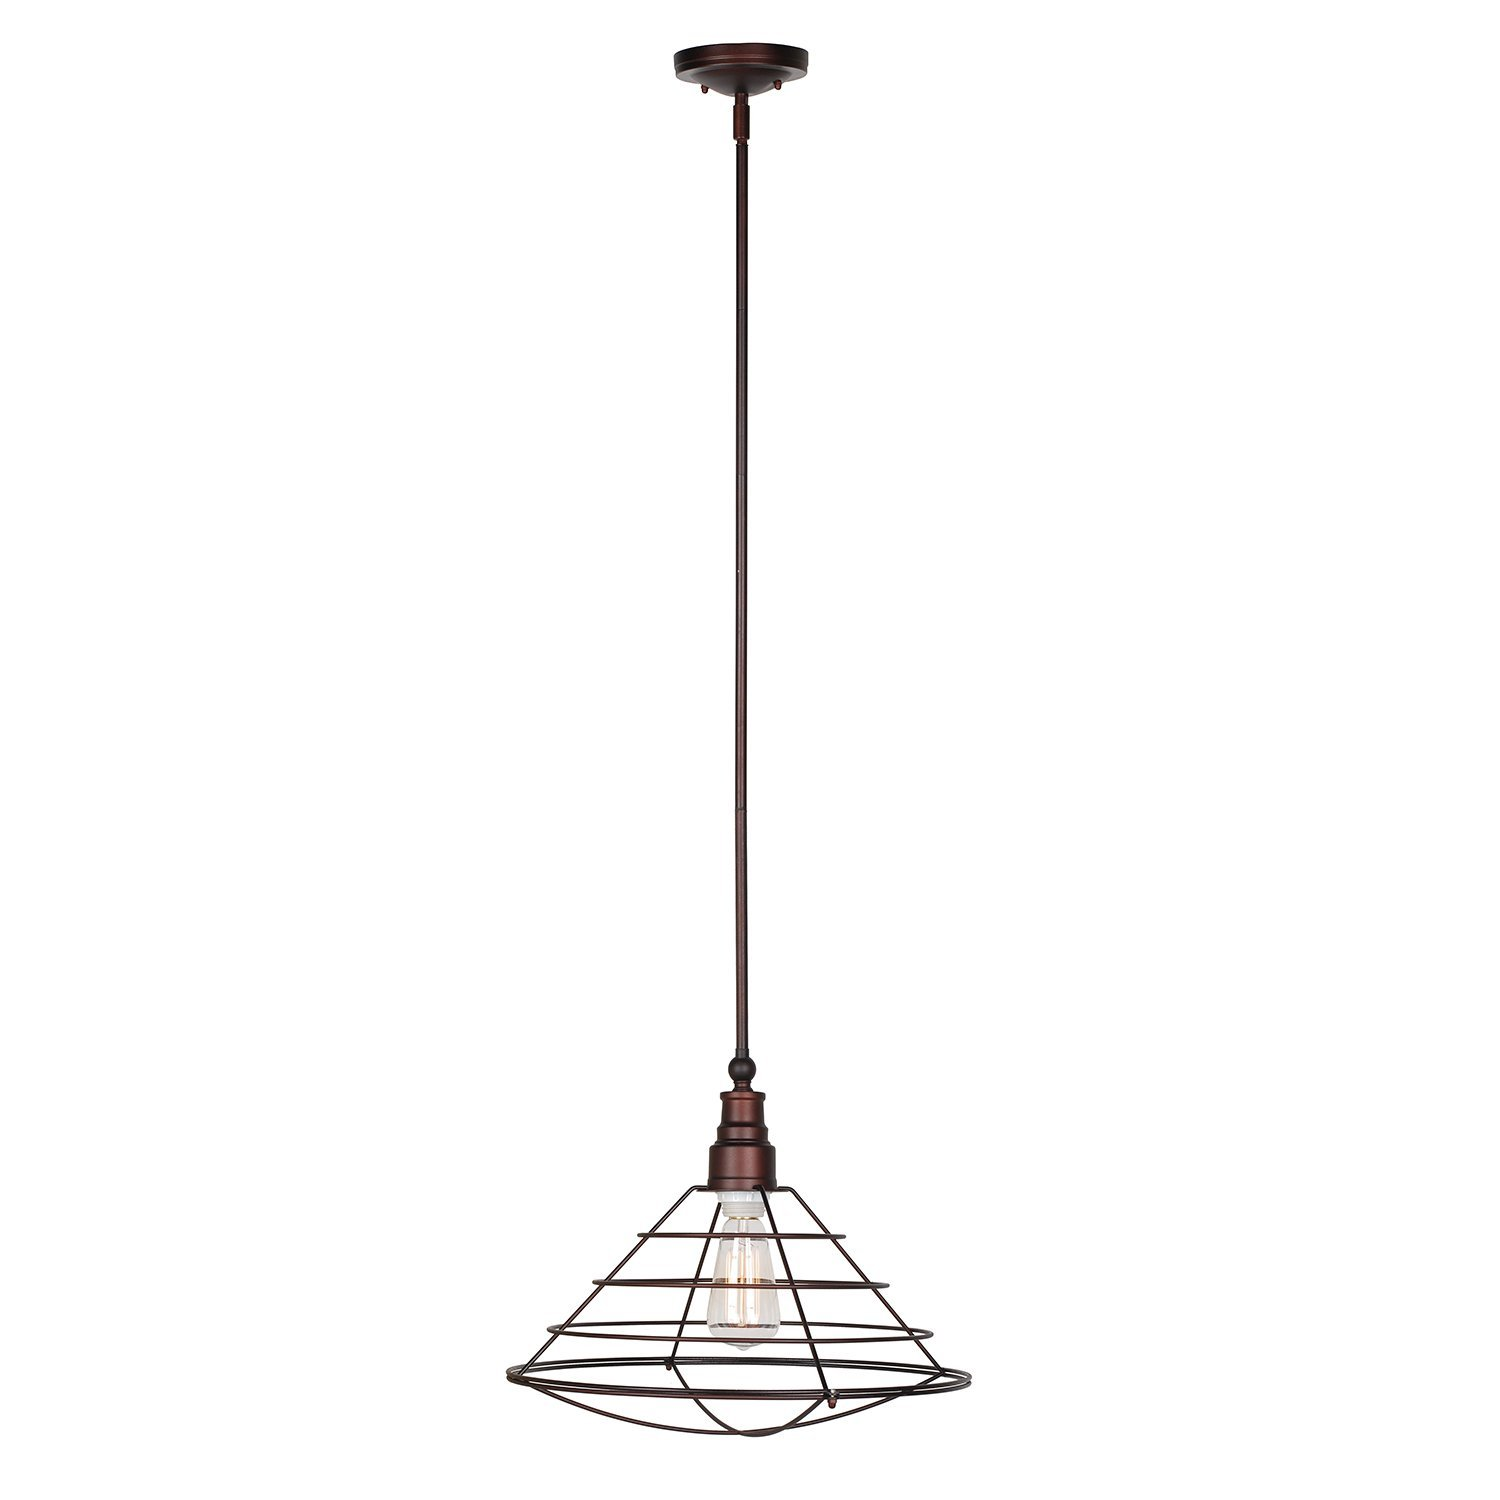 Design House Ajax 1-Light Pendant, Galvanized Finish - 519678